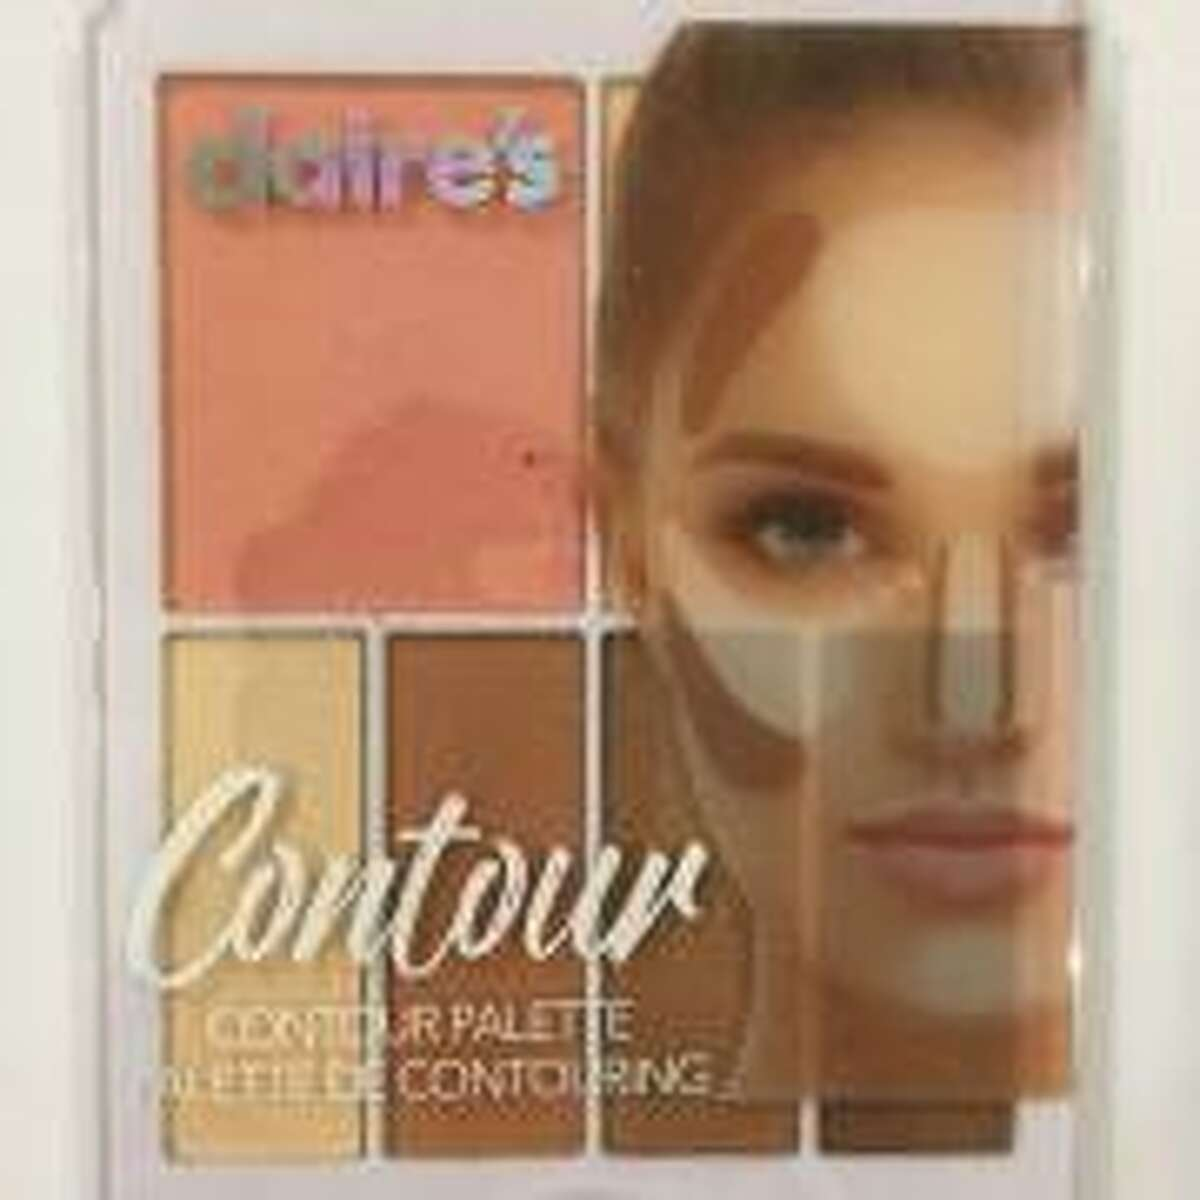 A consumer group claims that independent lab tests confirm that three makeup products found for sale at the Claire?'s retail chain are contaminated with asbestos.